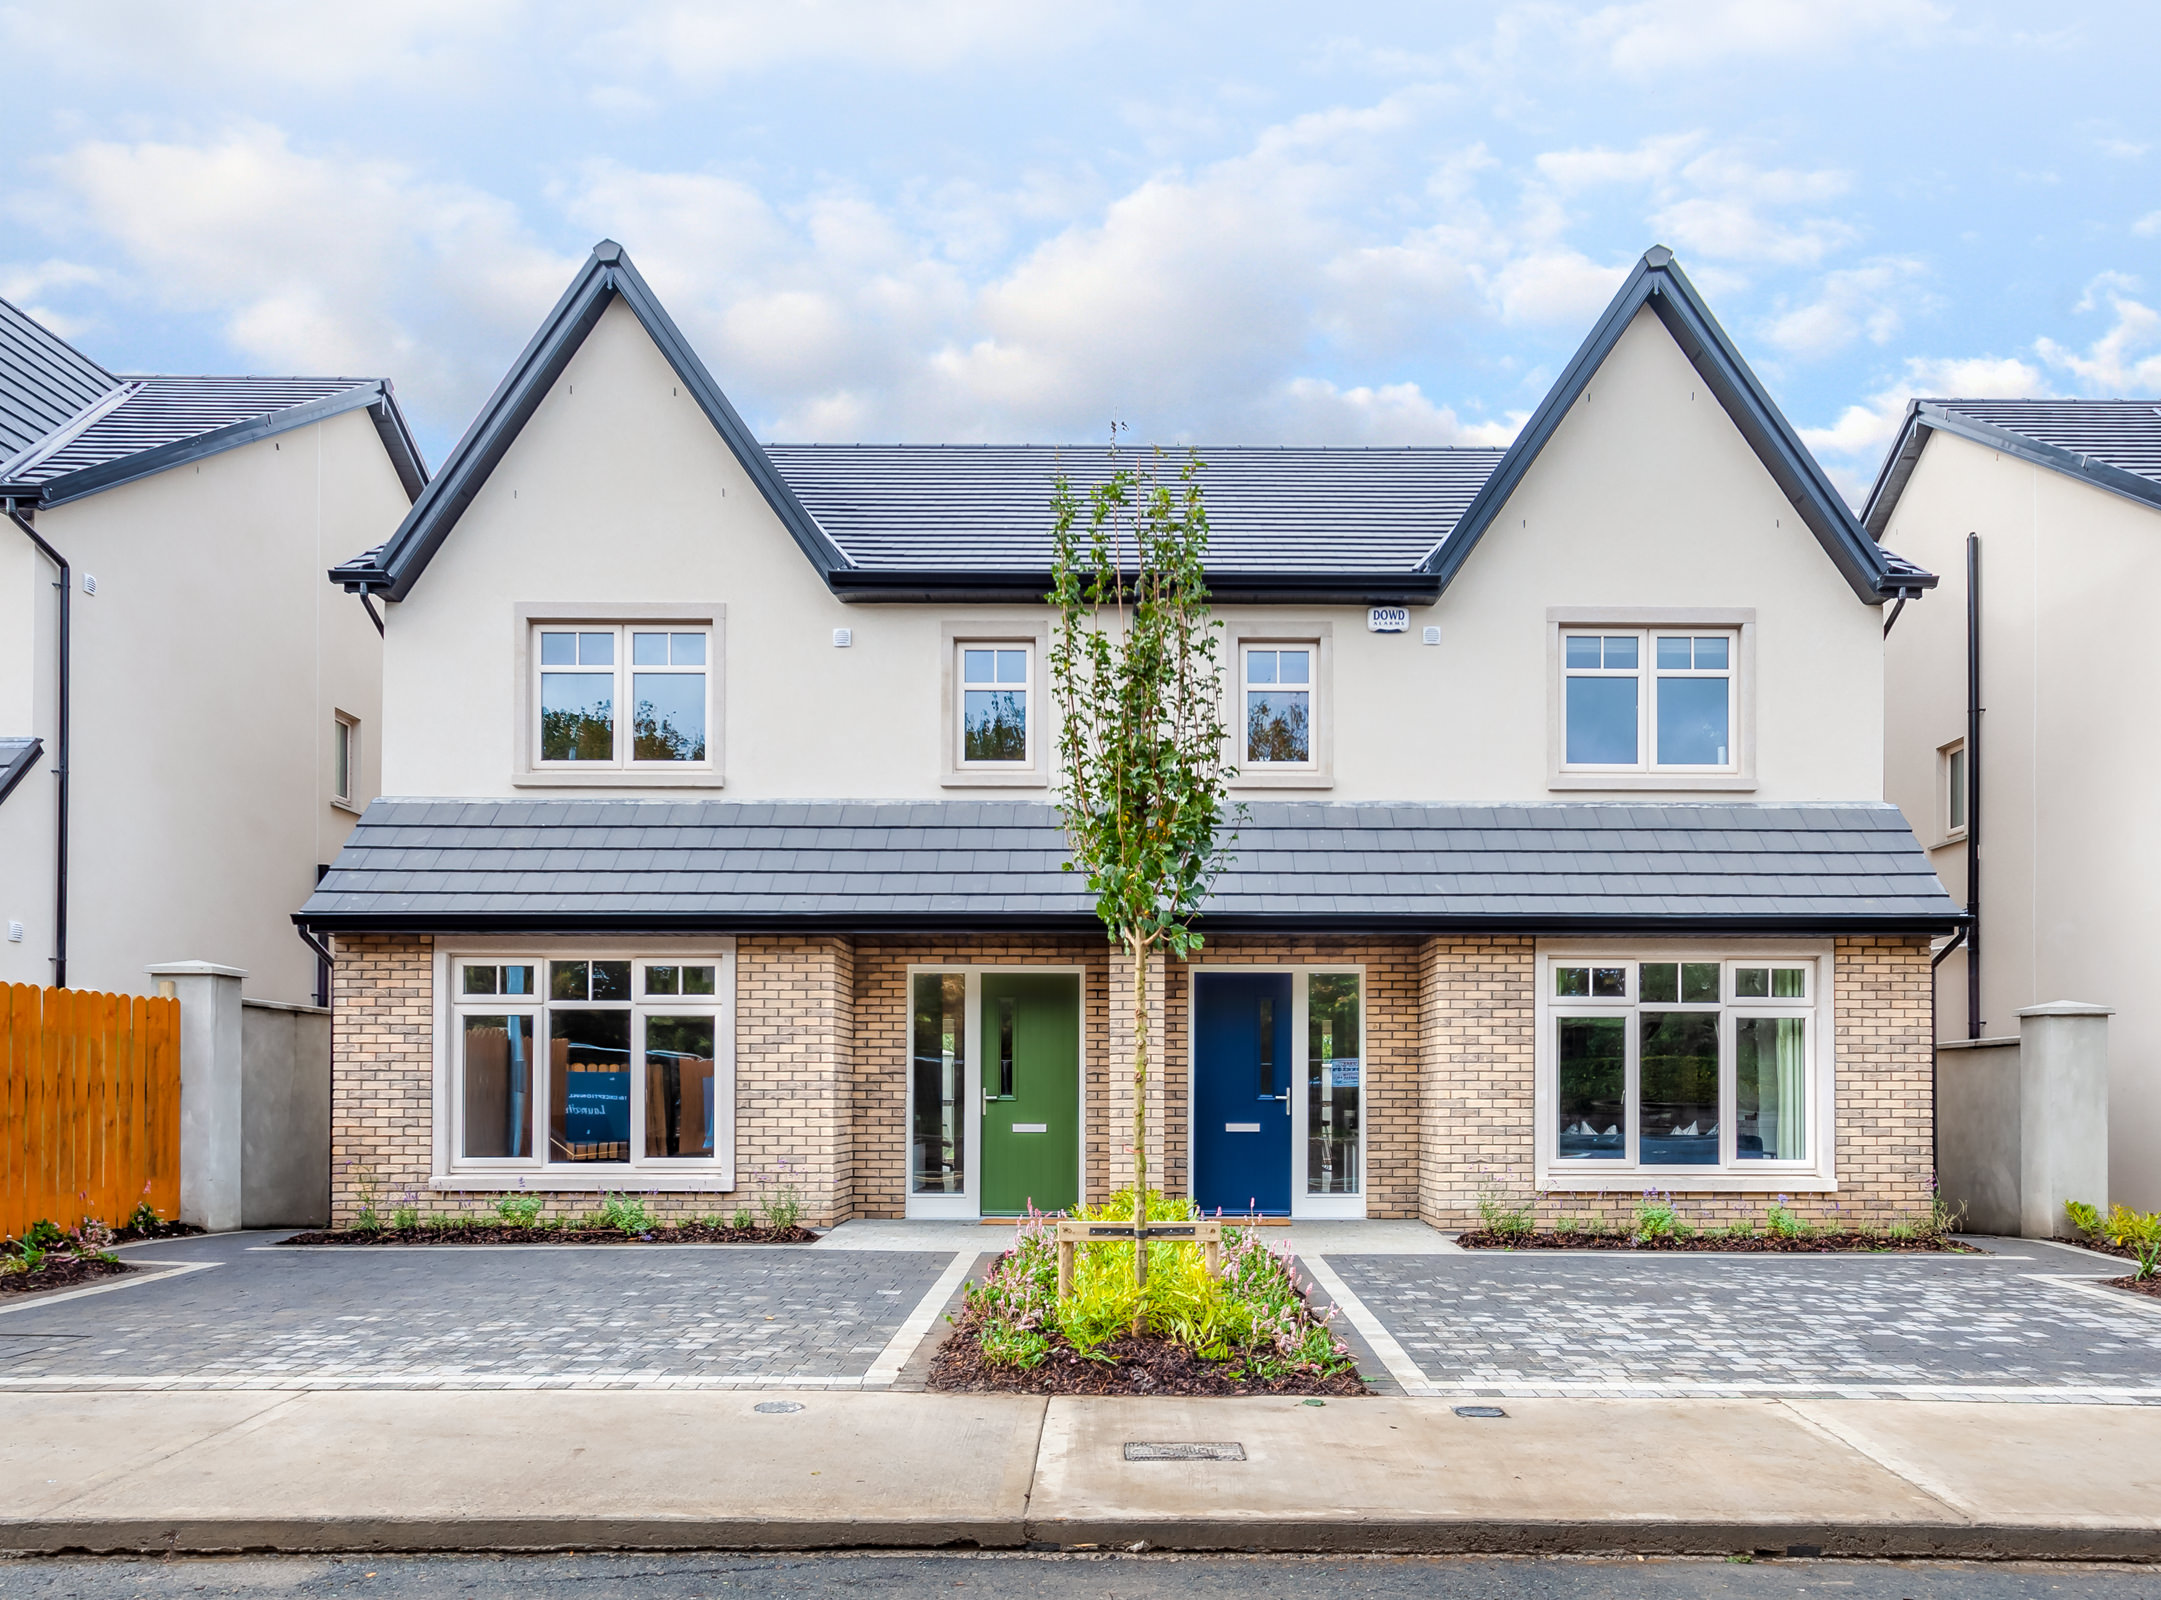 Property For Sale Kildare - Homes For Sale Kildare - Kelland Homes Wavertree